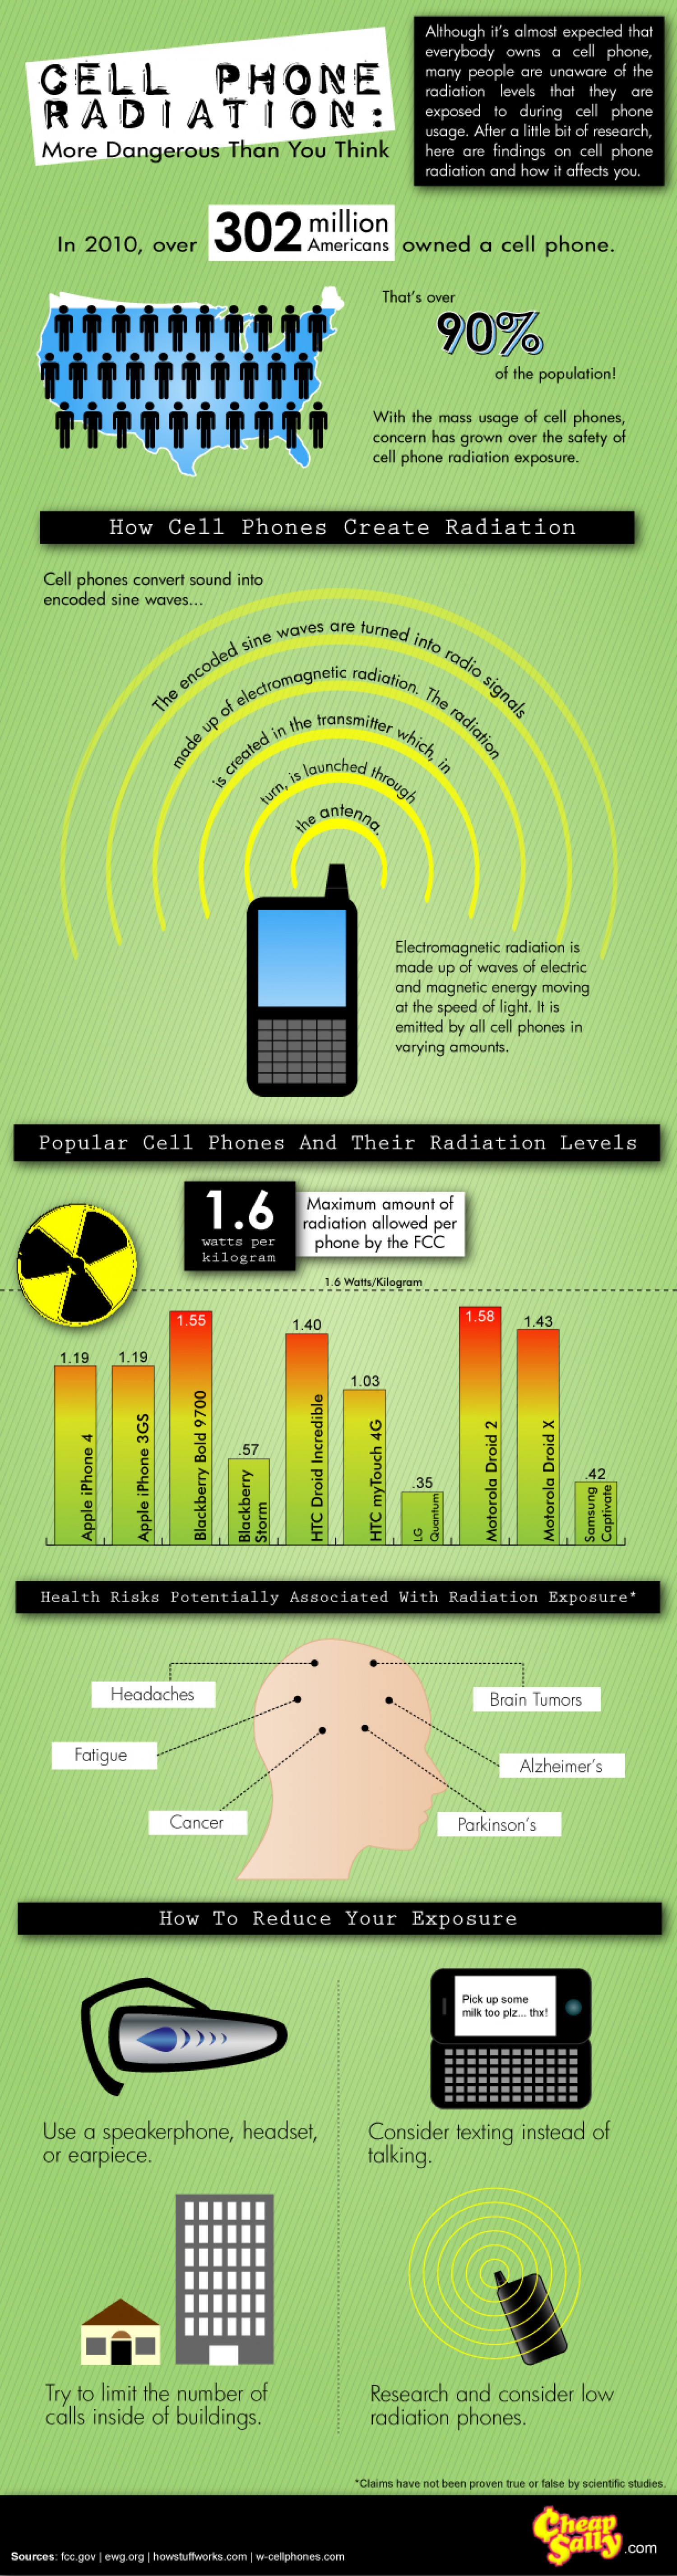 Cell Phone Radiation: More Dangerous Than You Think Infographic